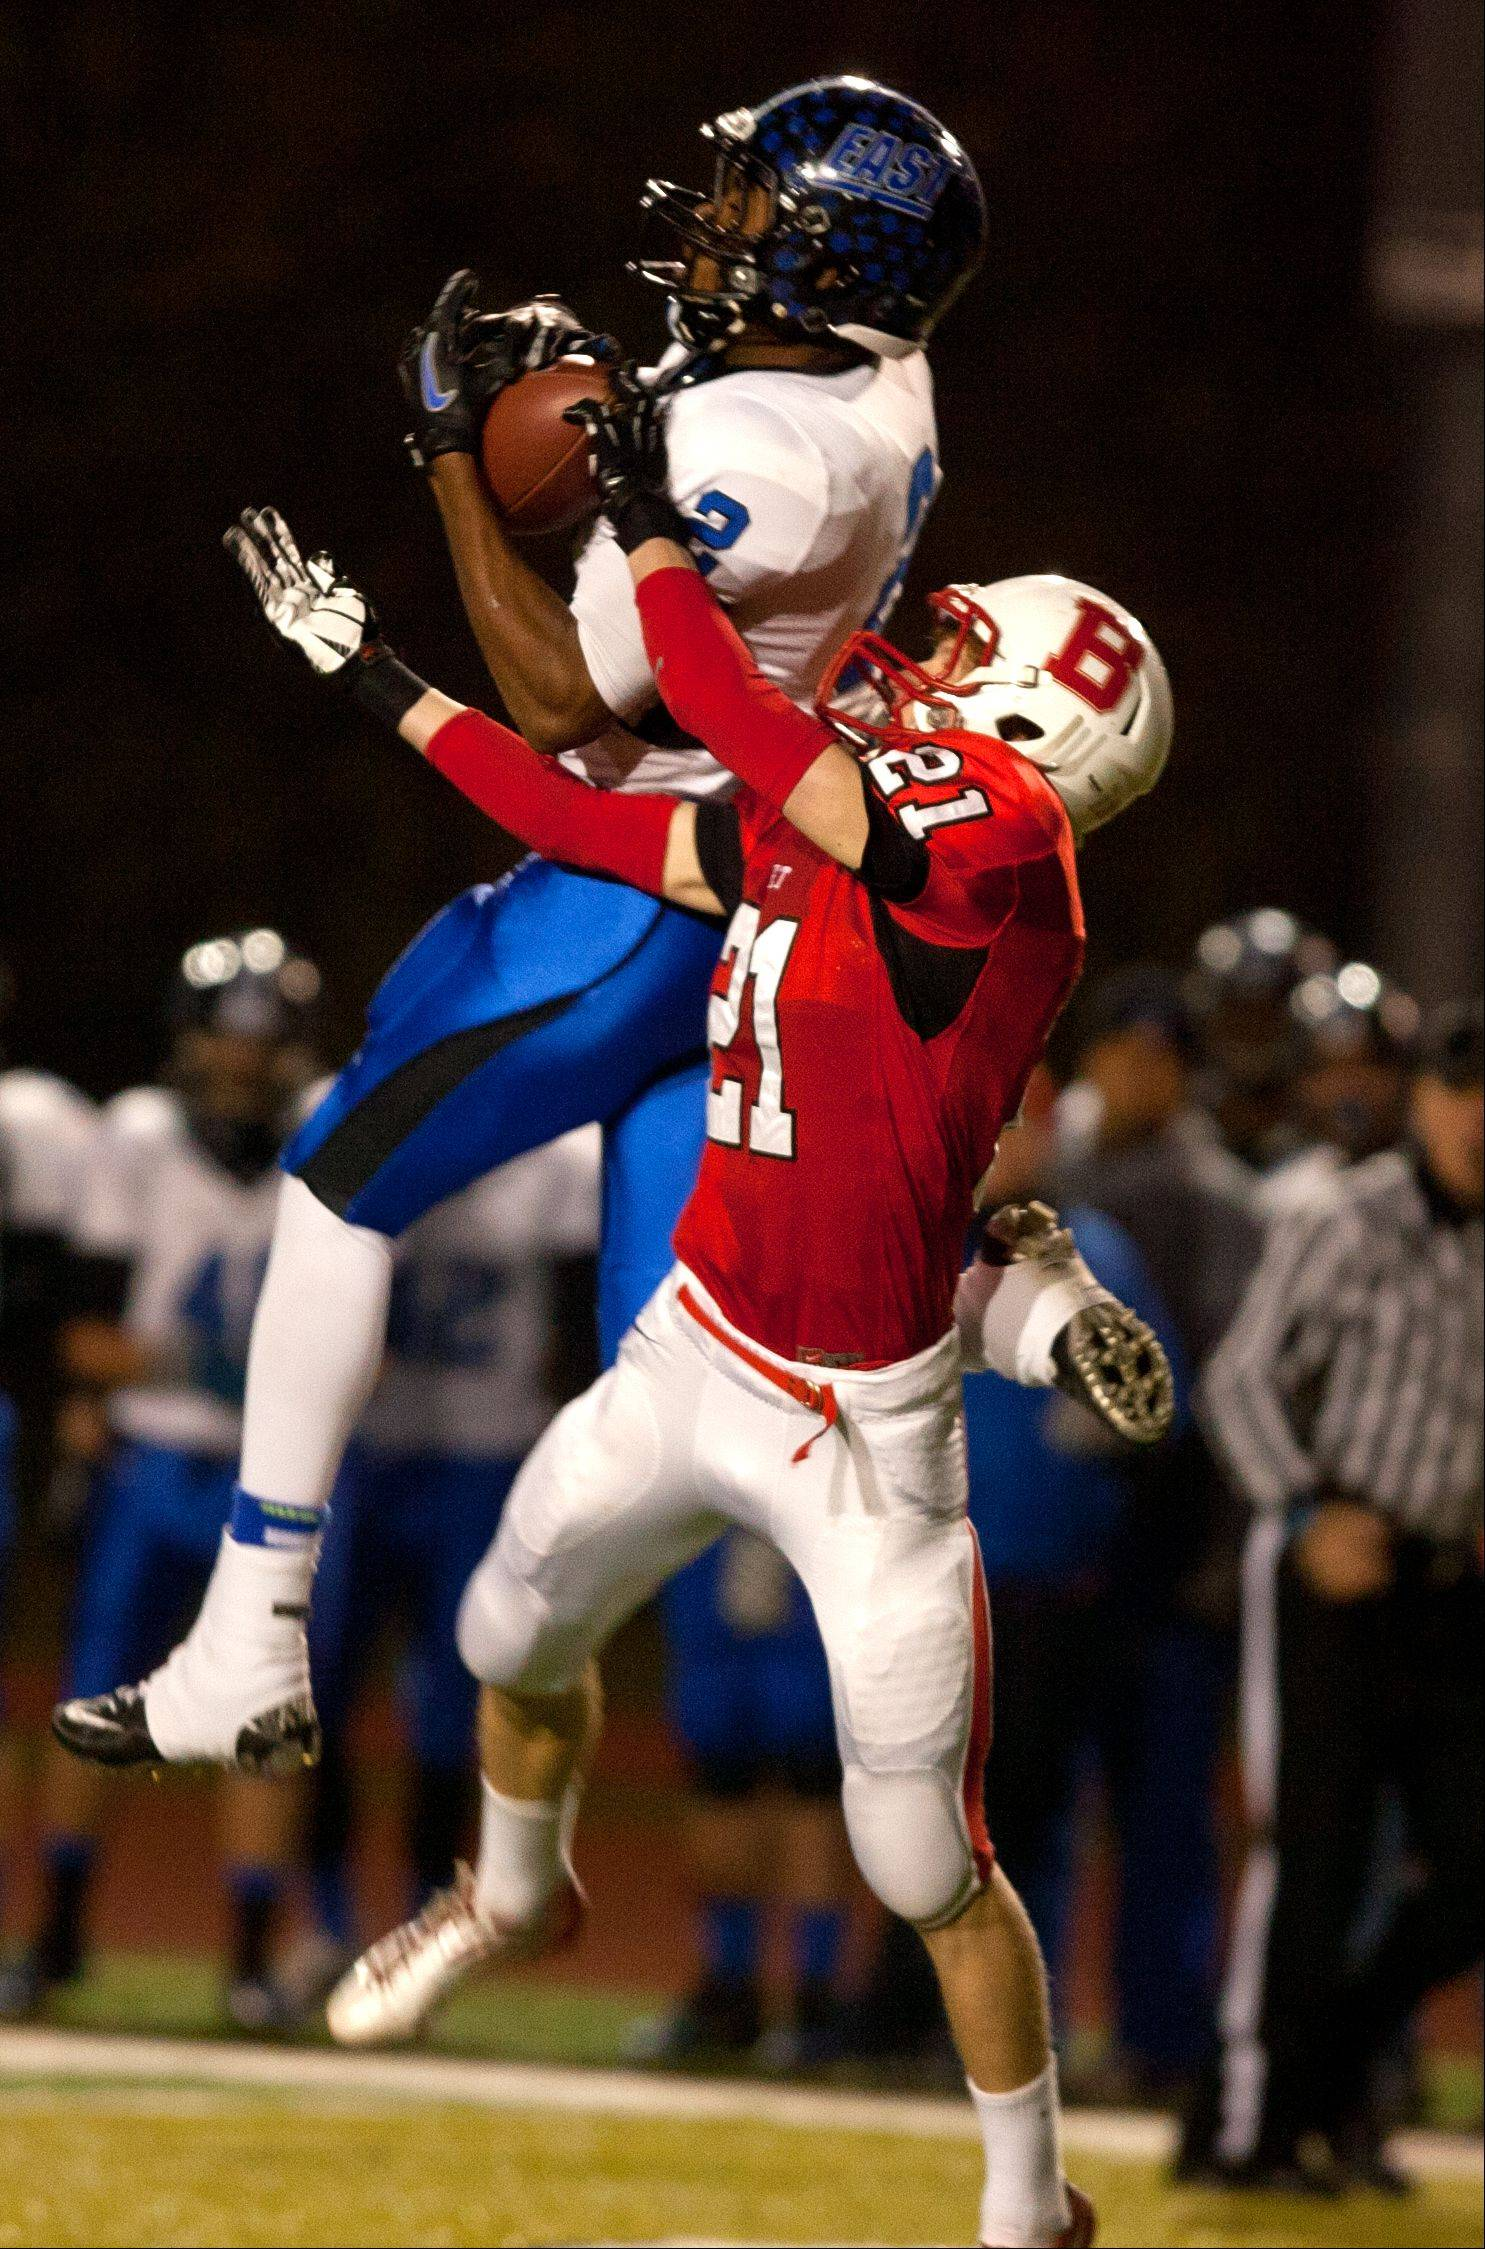 Benet's Ryan Parks (21) defends Lincoln-Way East's Justin Corbett (2), who caught a long third down pass during Class 7A football semifinals at Benedictine.